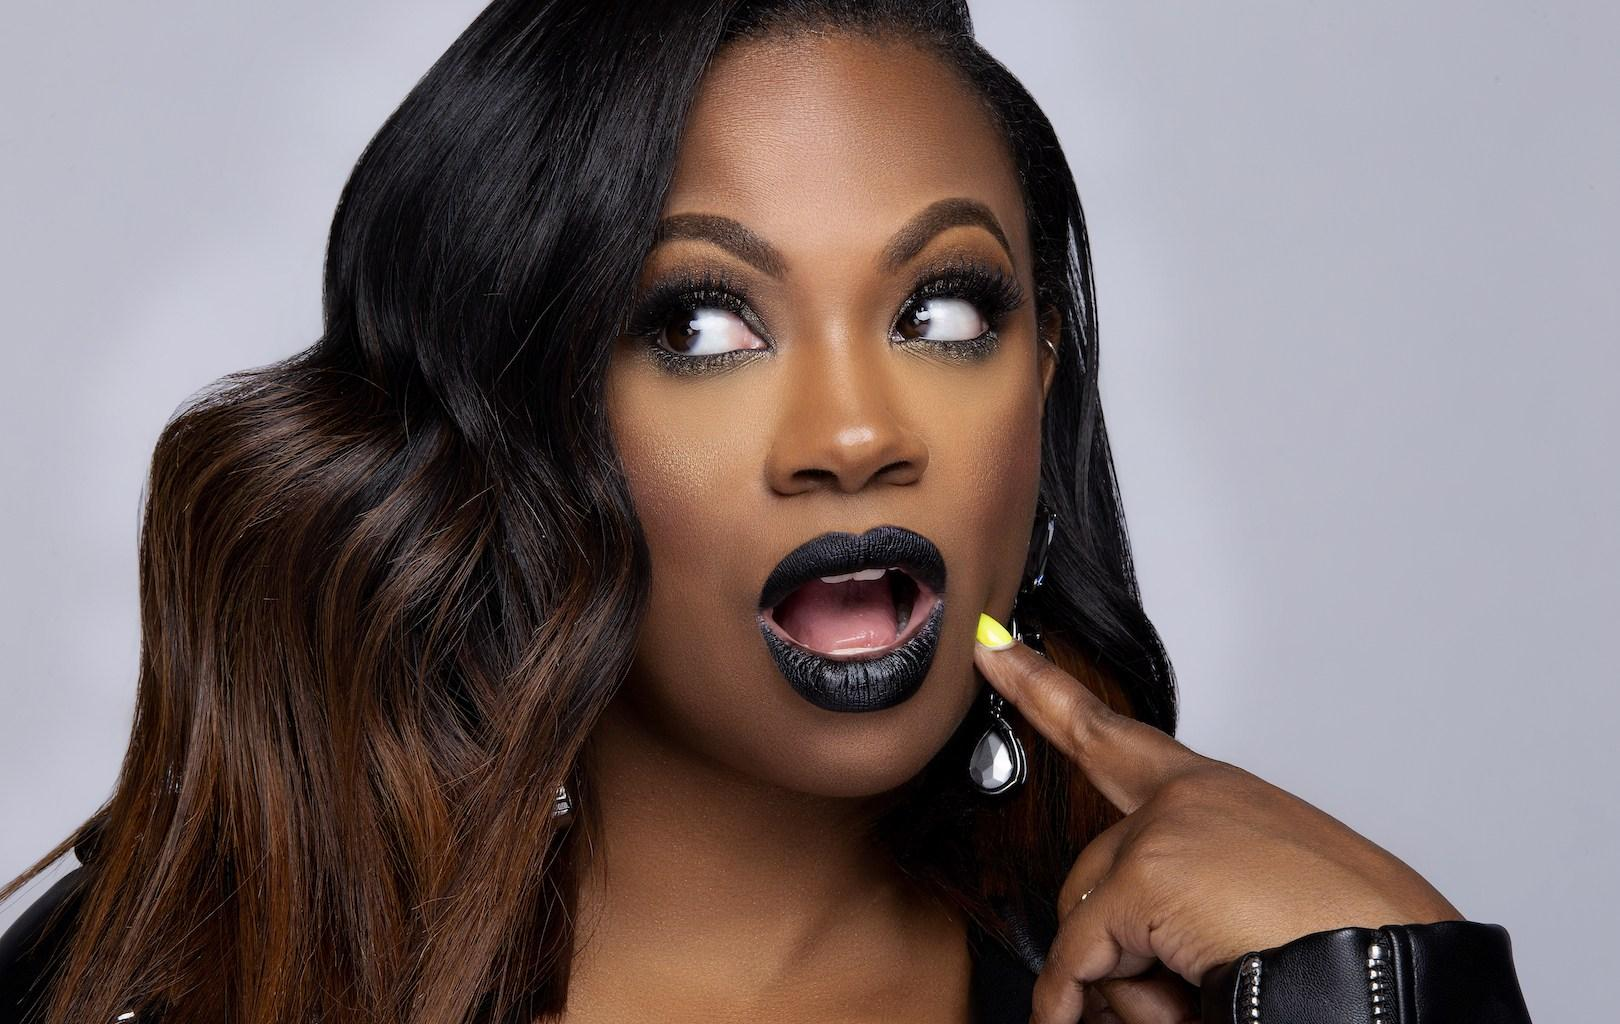 Kandi Burruss Gushes Over Her Supportive Family In The Latest IG Post